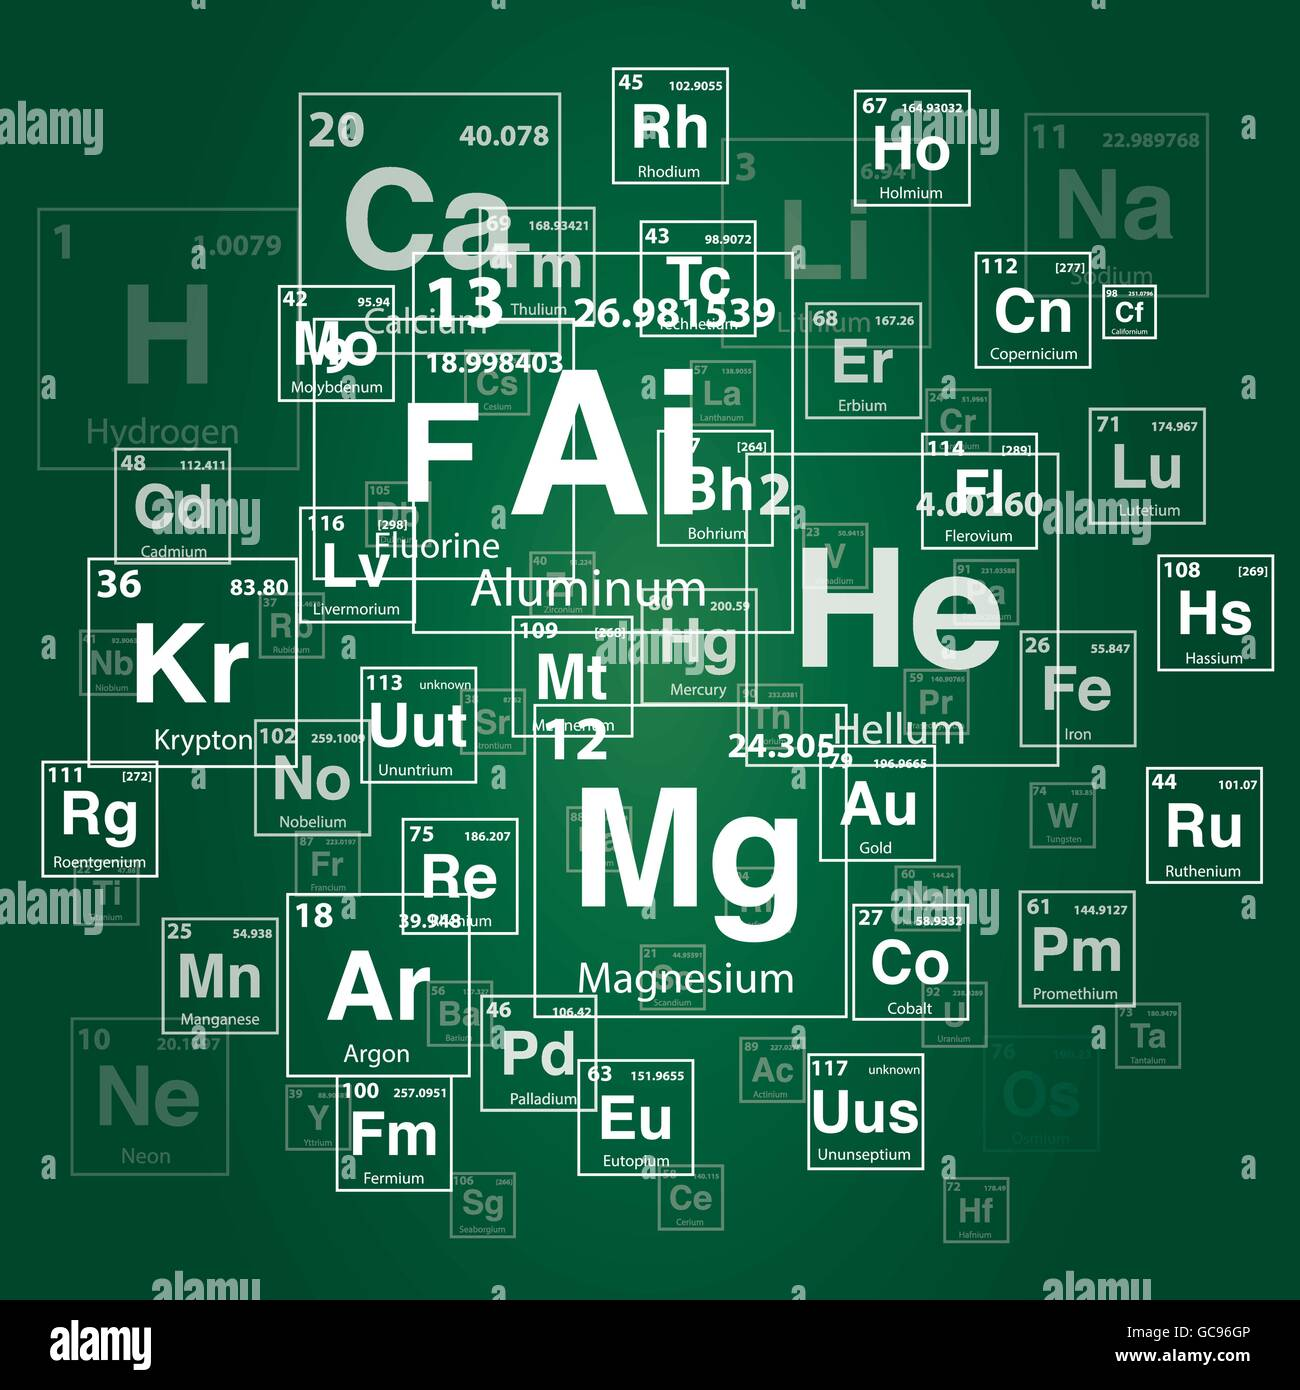 Periodic table of the elements isolated stock photo royalty free 3d rendering periodic table of the elements background illustration stock photo gamestrikefo Choice Image